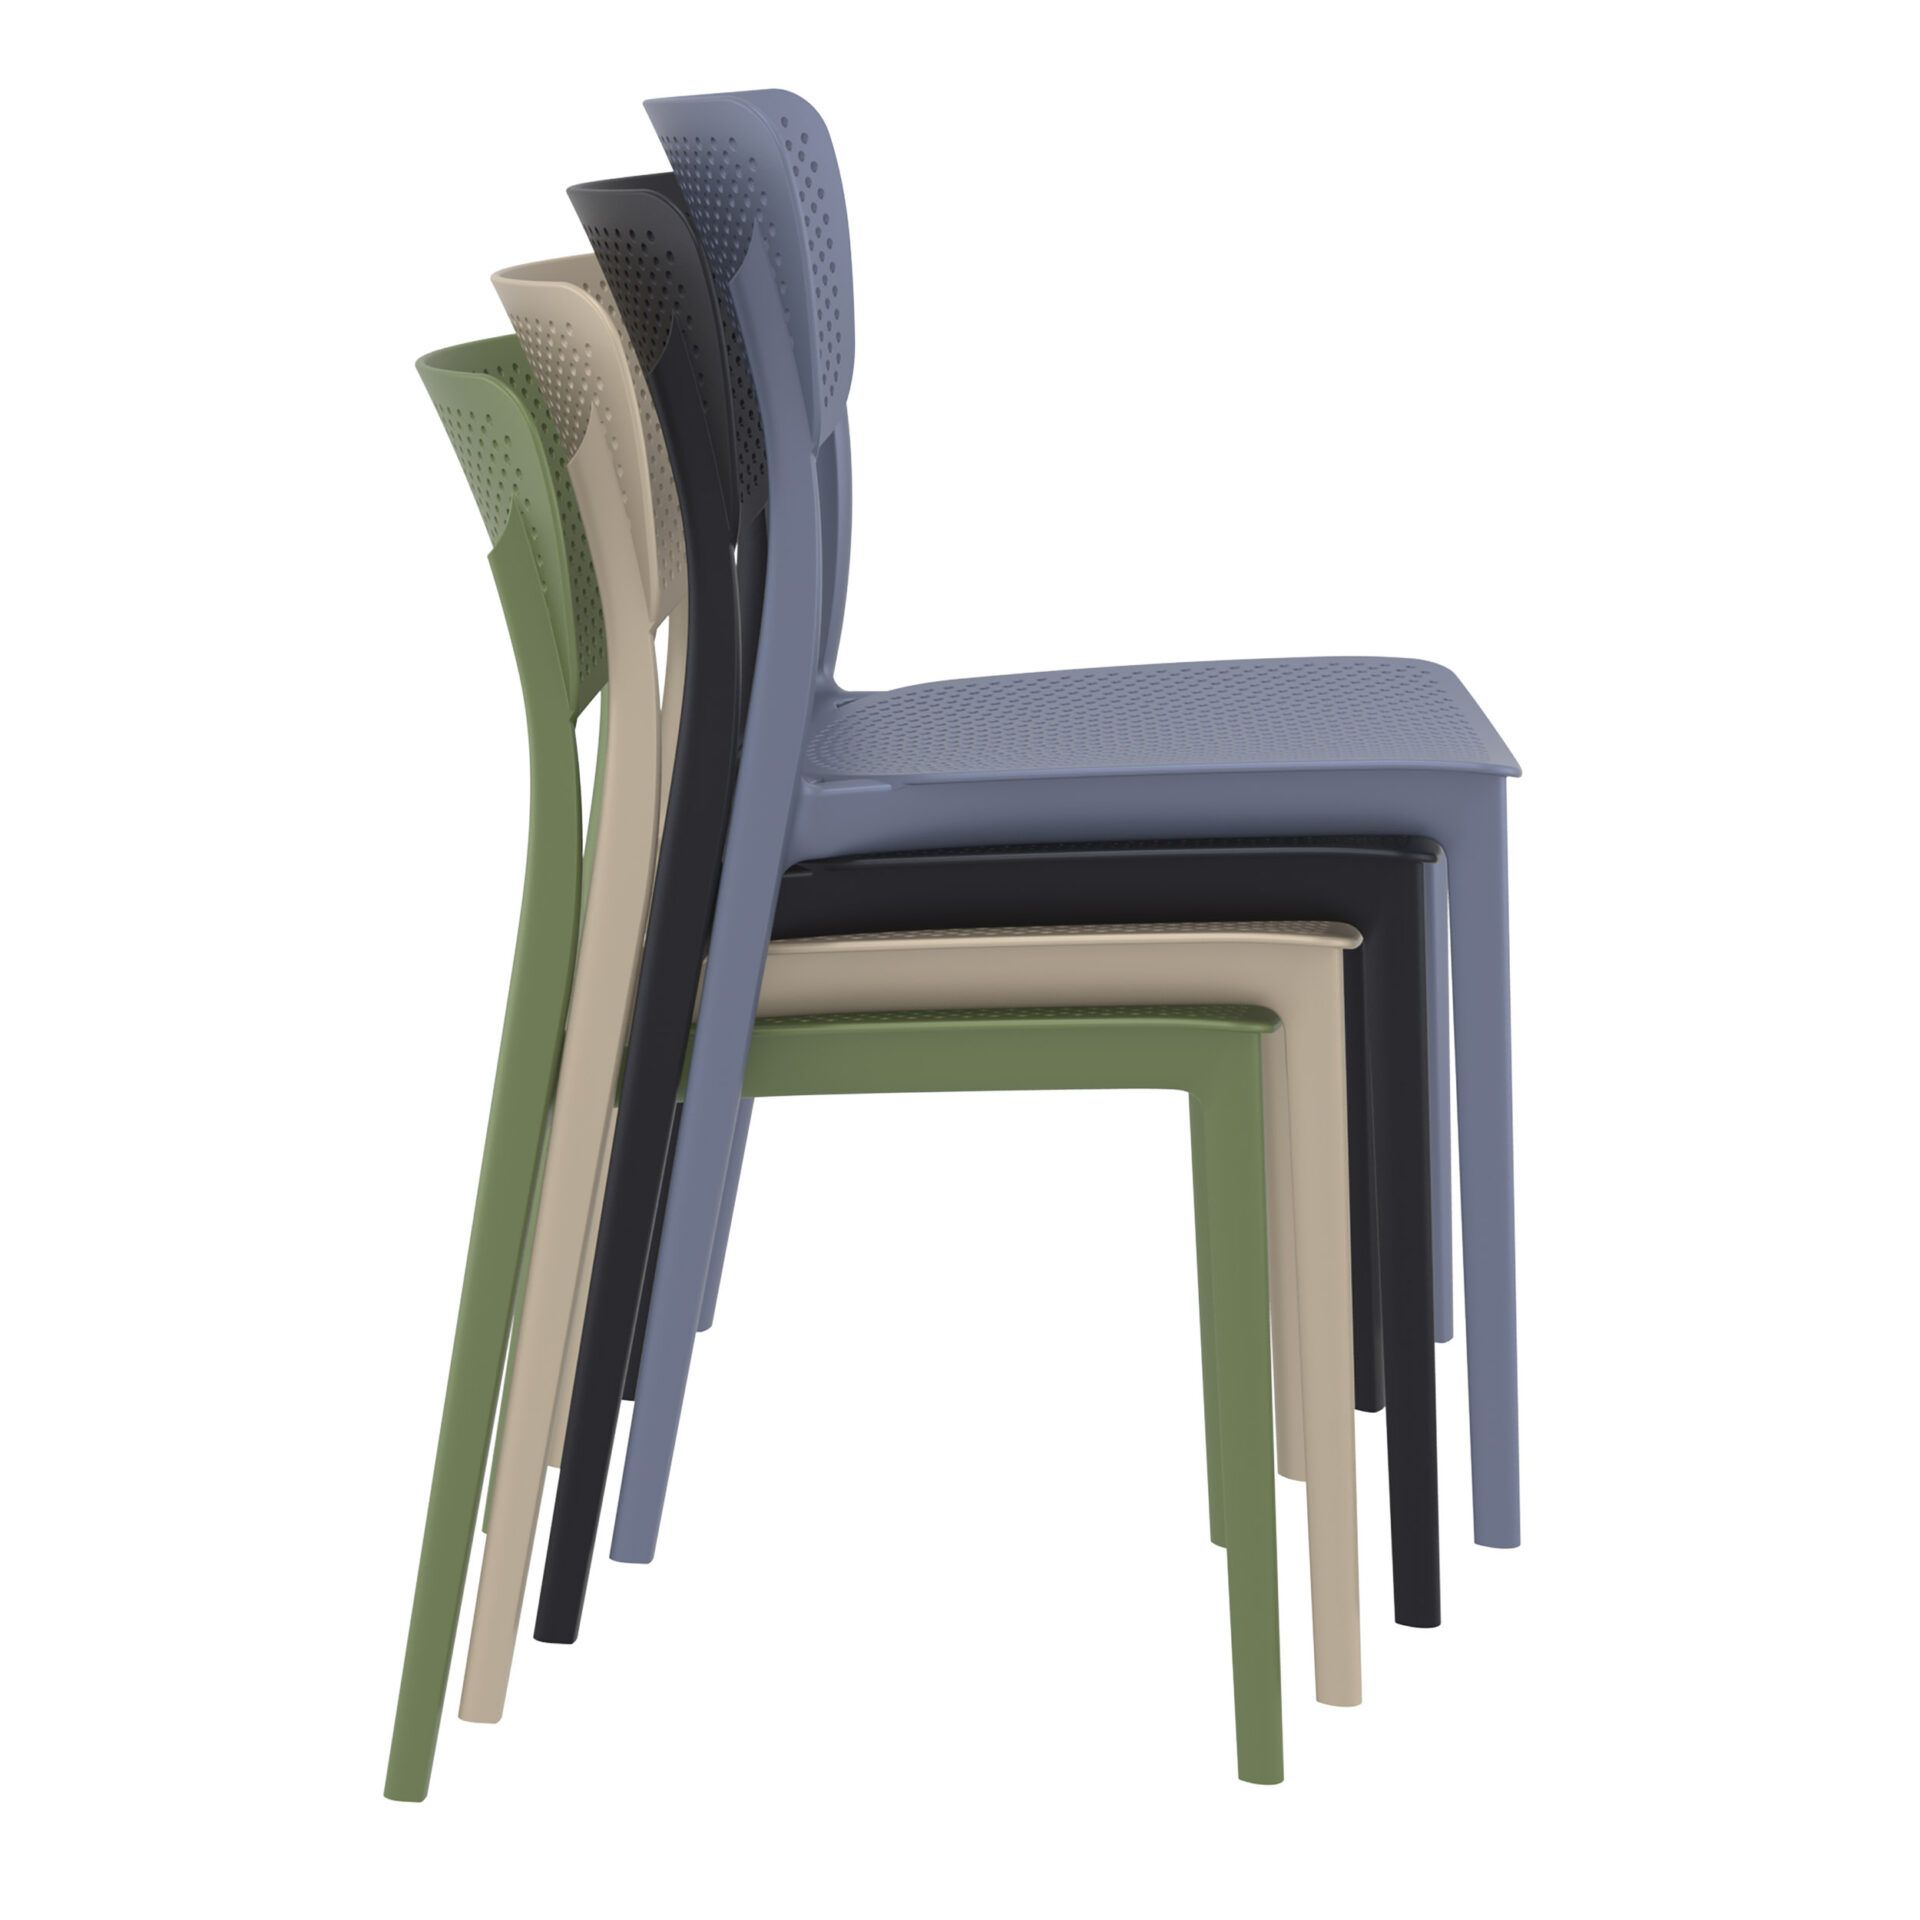 polypropylene hospitality seating lucy chair stack 1